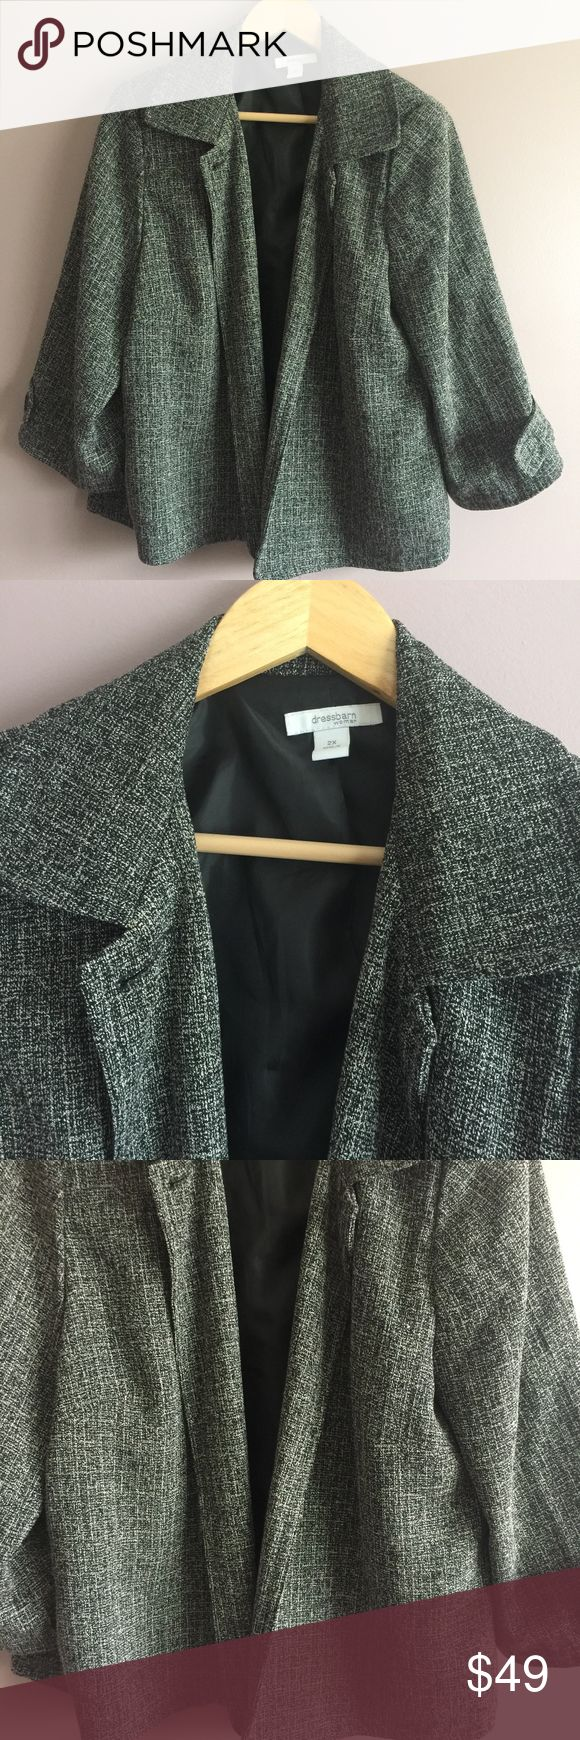 Women's Dressbarn Black & White 3/4 Length Blazer Beautiful and Stylish Black and White Dress Barn Women's  Blazer Size 2X in very good condition. No zipper or buttons included with blazer. Smoke-free/Pet-free home. Bundle for additional savings. Offers always welcome. 1 business day shipping except on weekends. Dress Barn Jackets & Coats Blazers